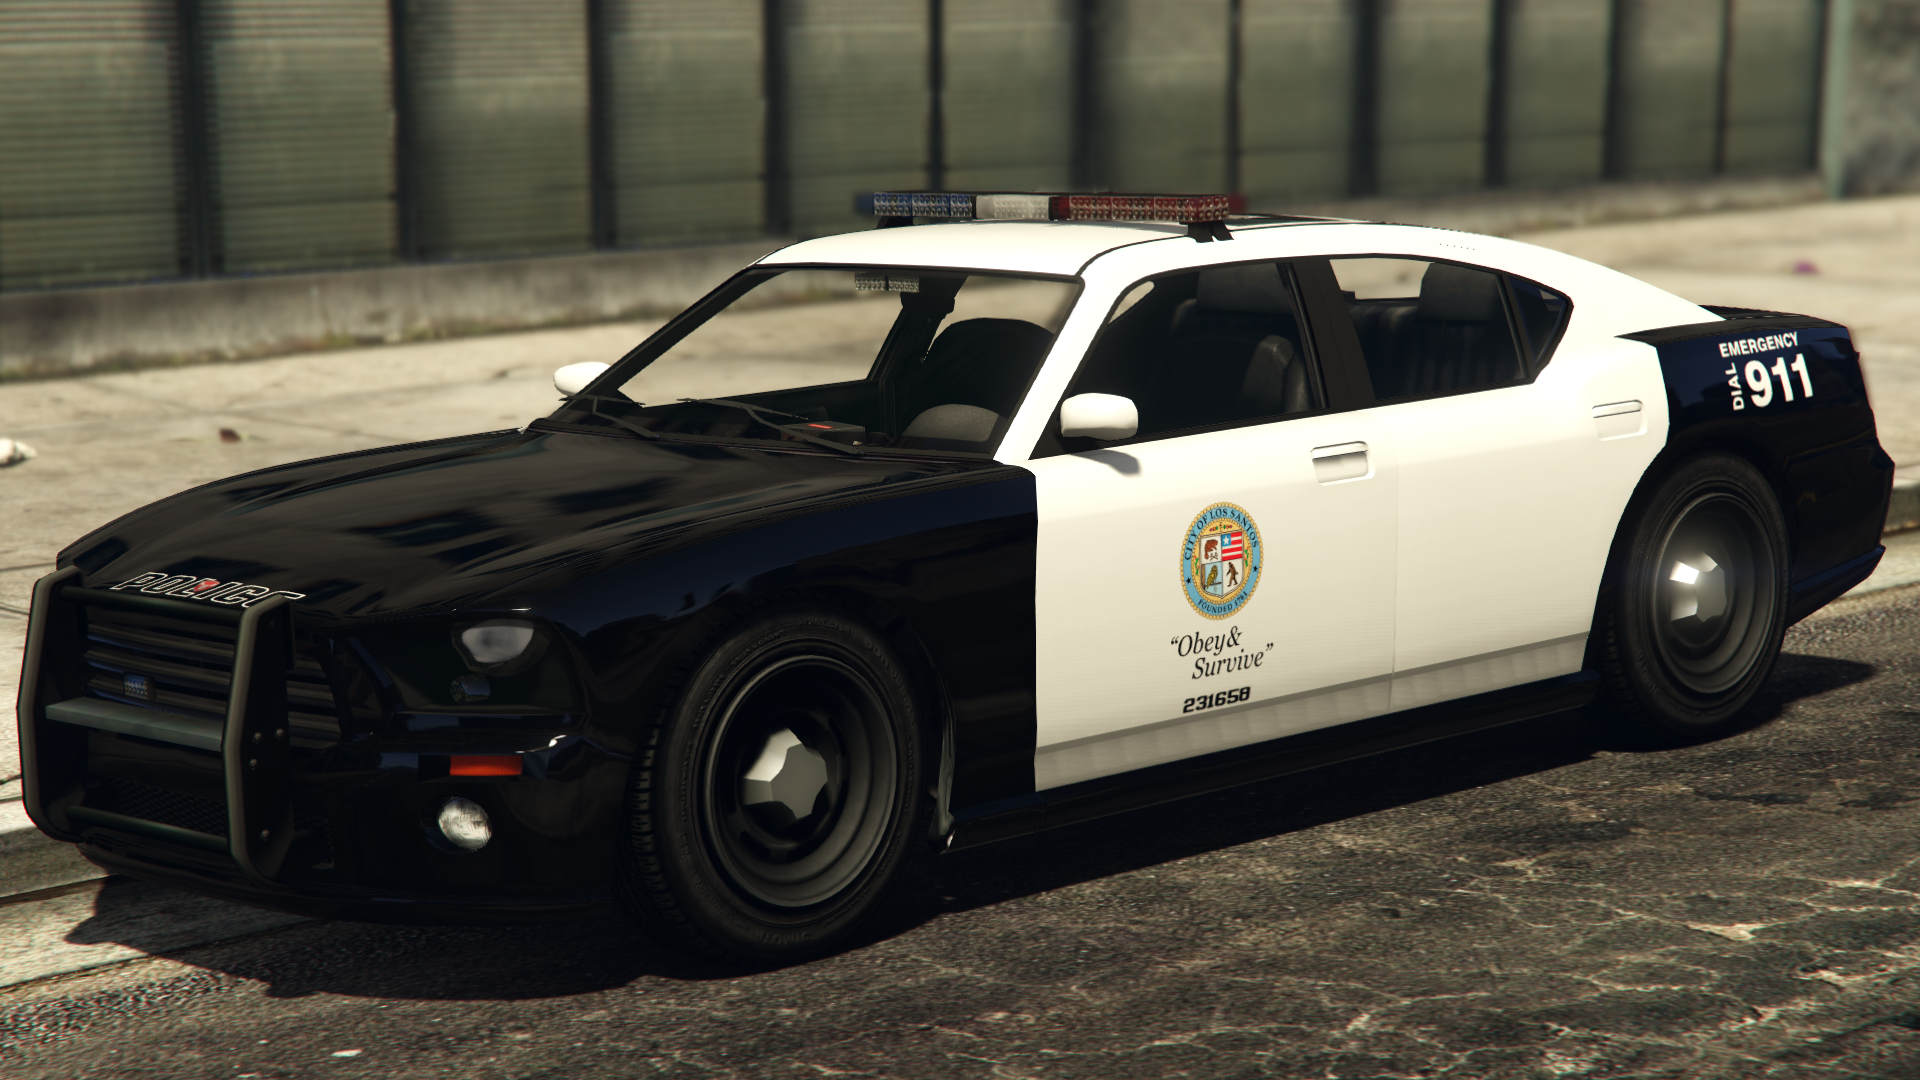 Police Cruiser Gta Wiki Fandom Powered By Wikia